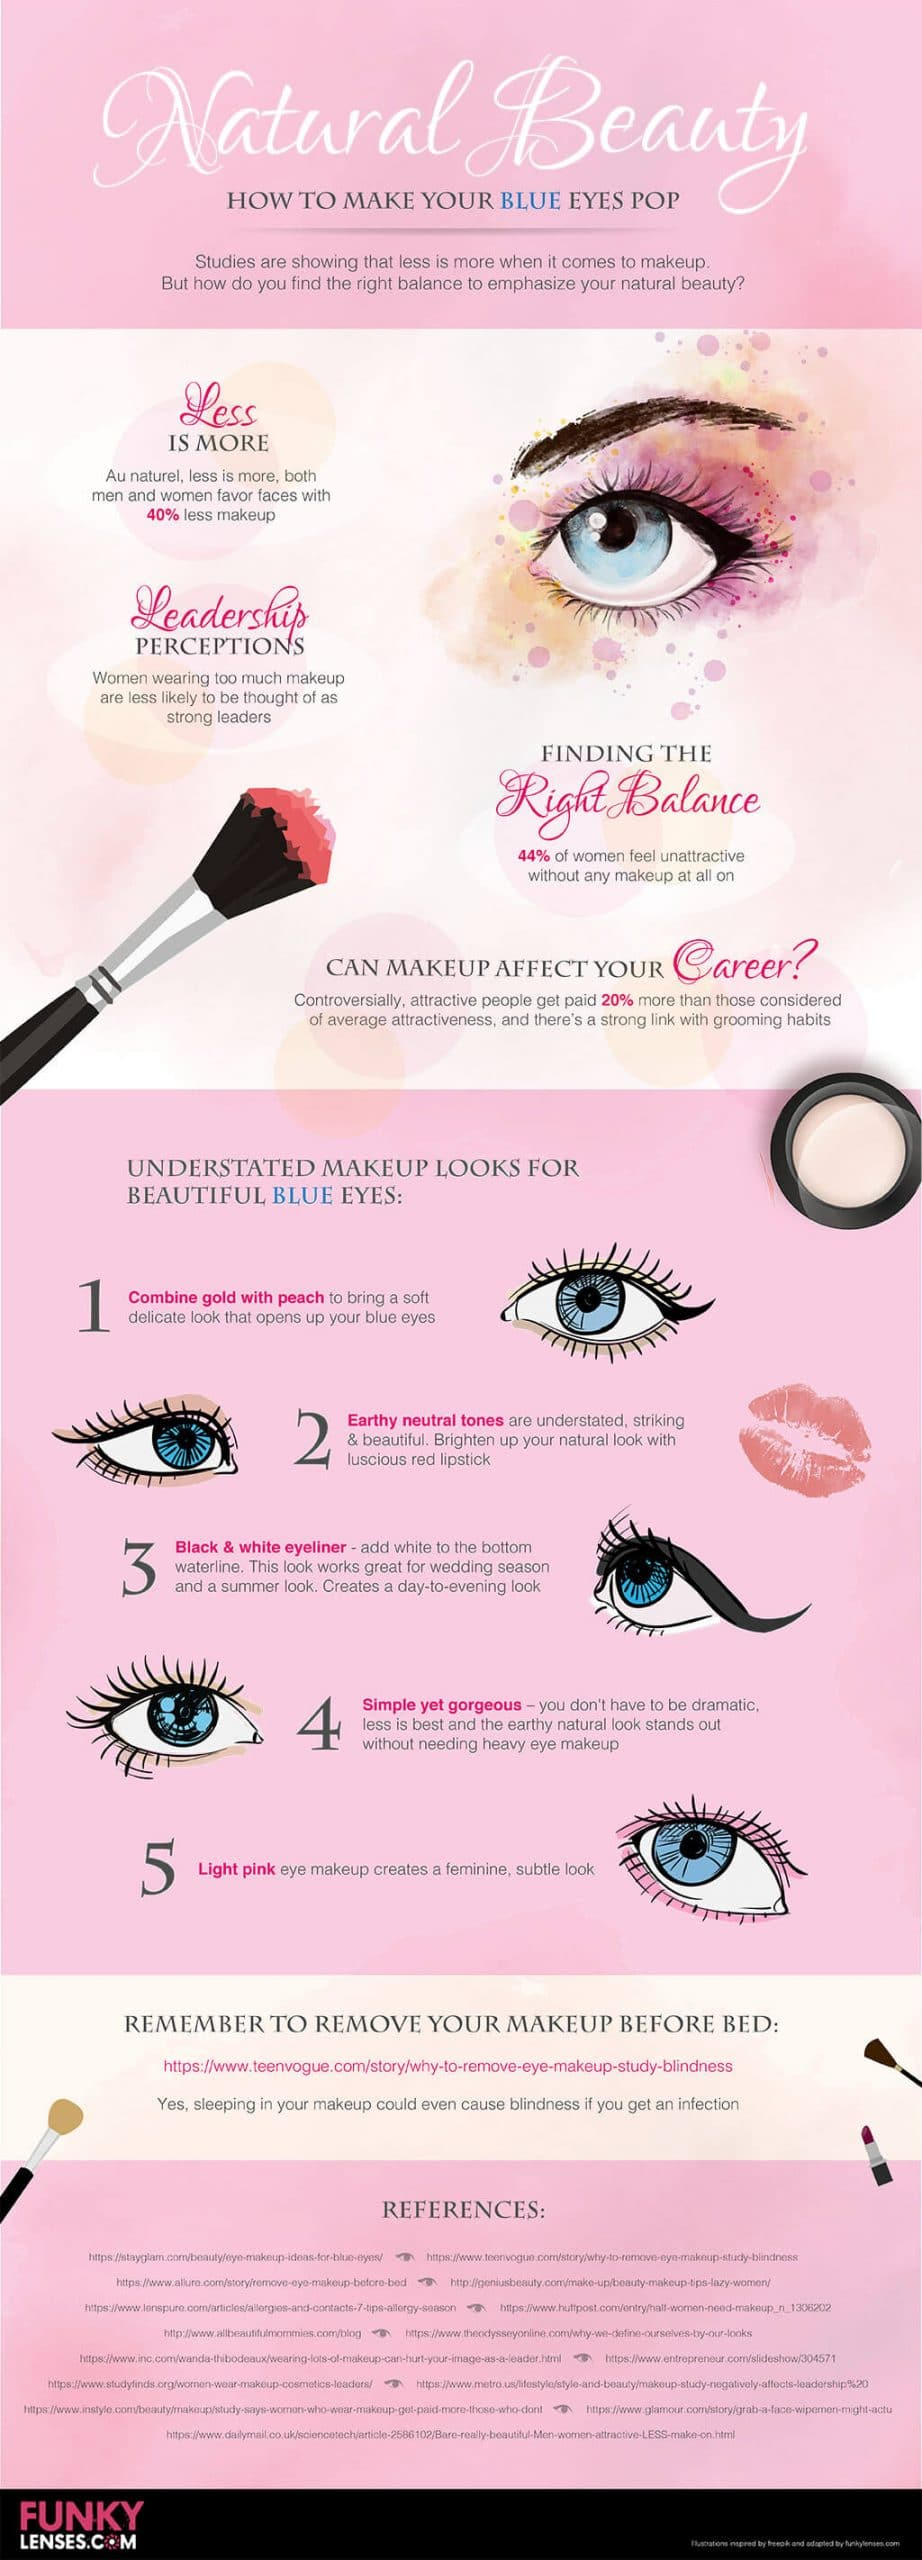 Make your blue eyes pop infographic